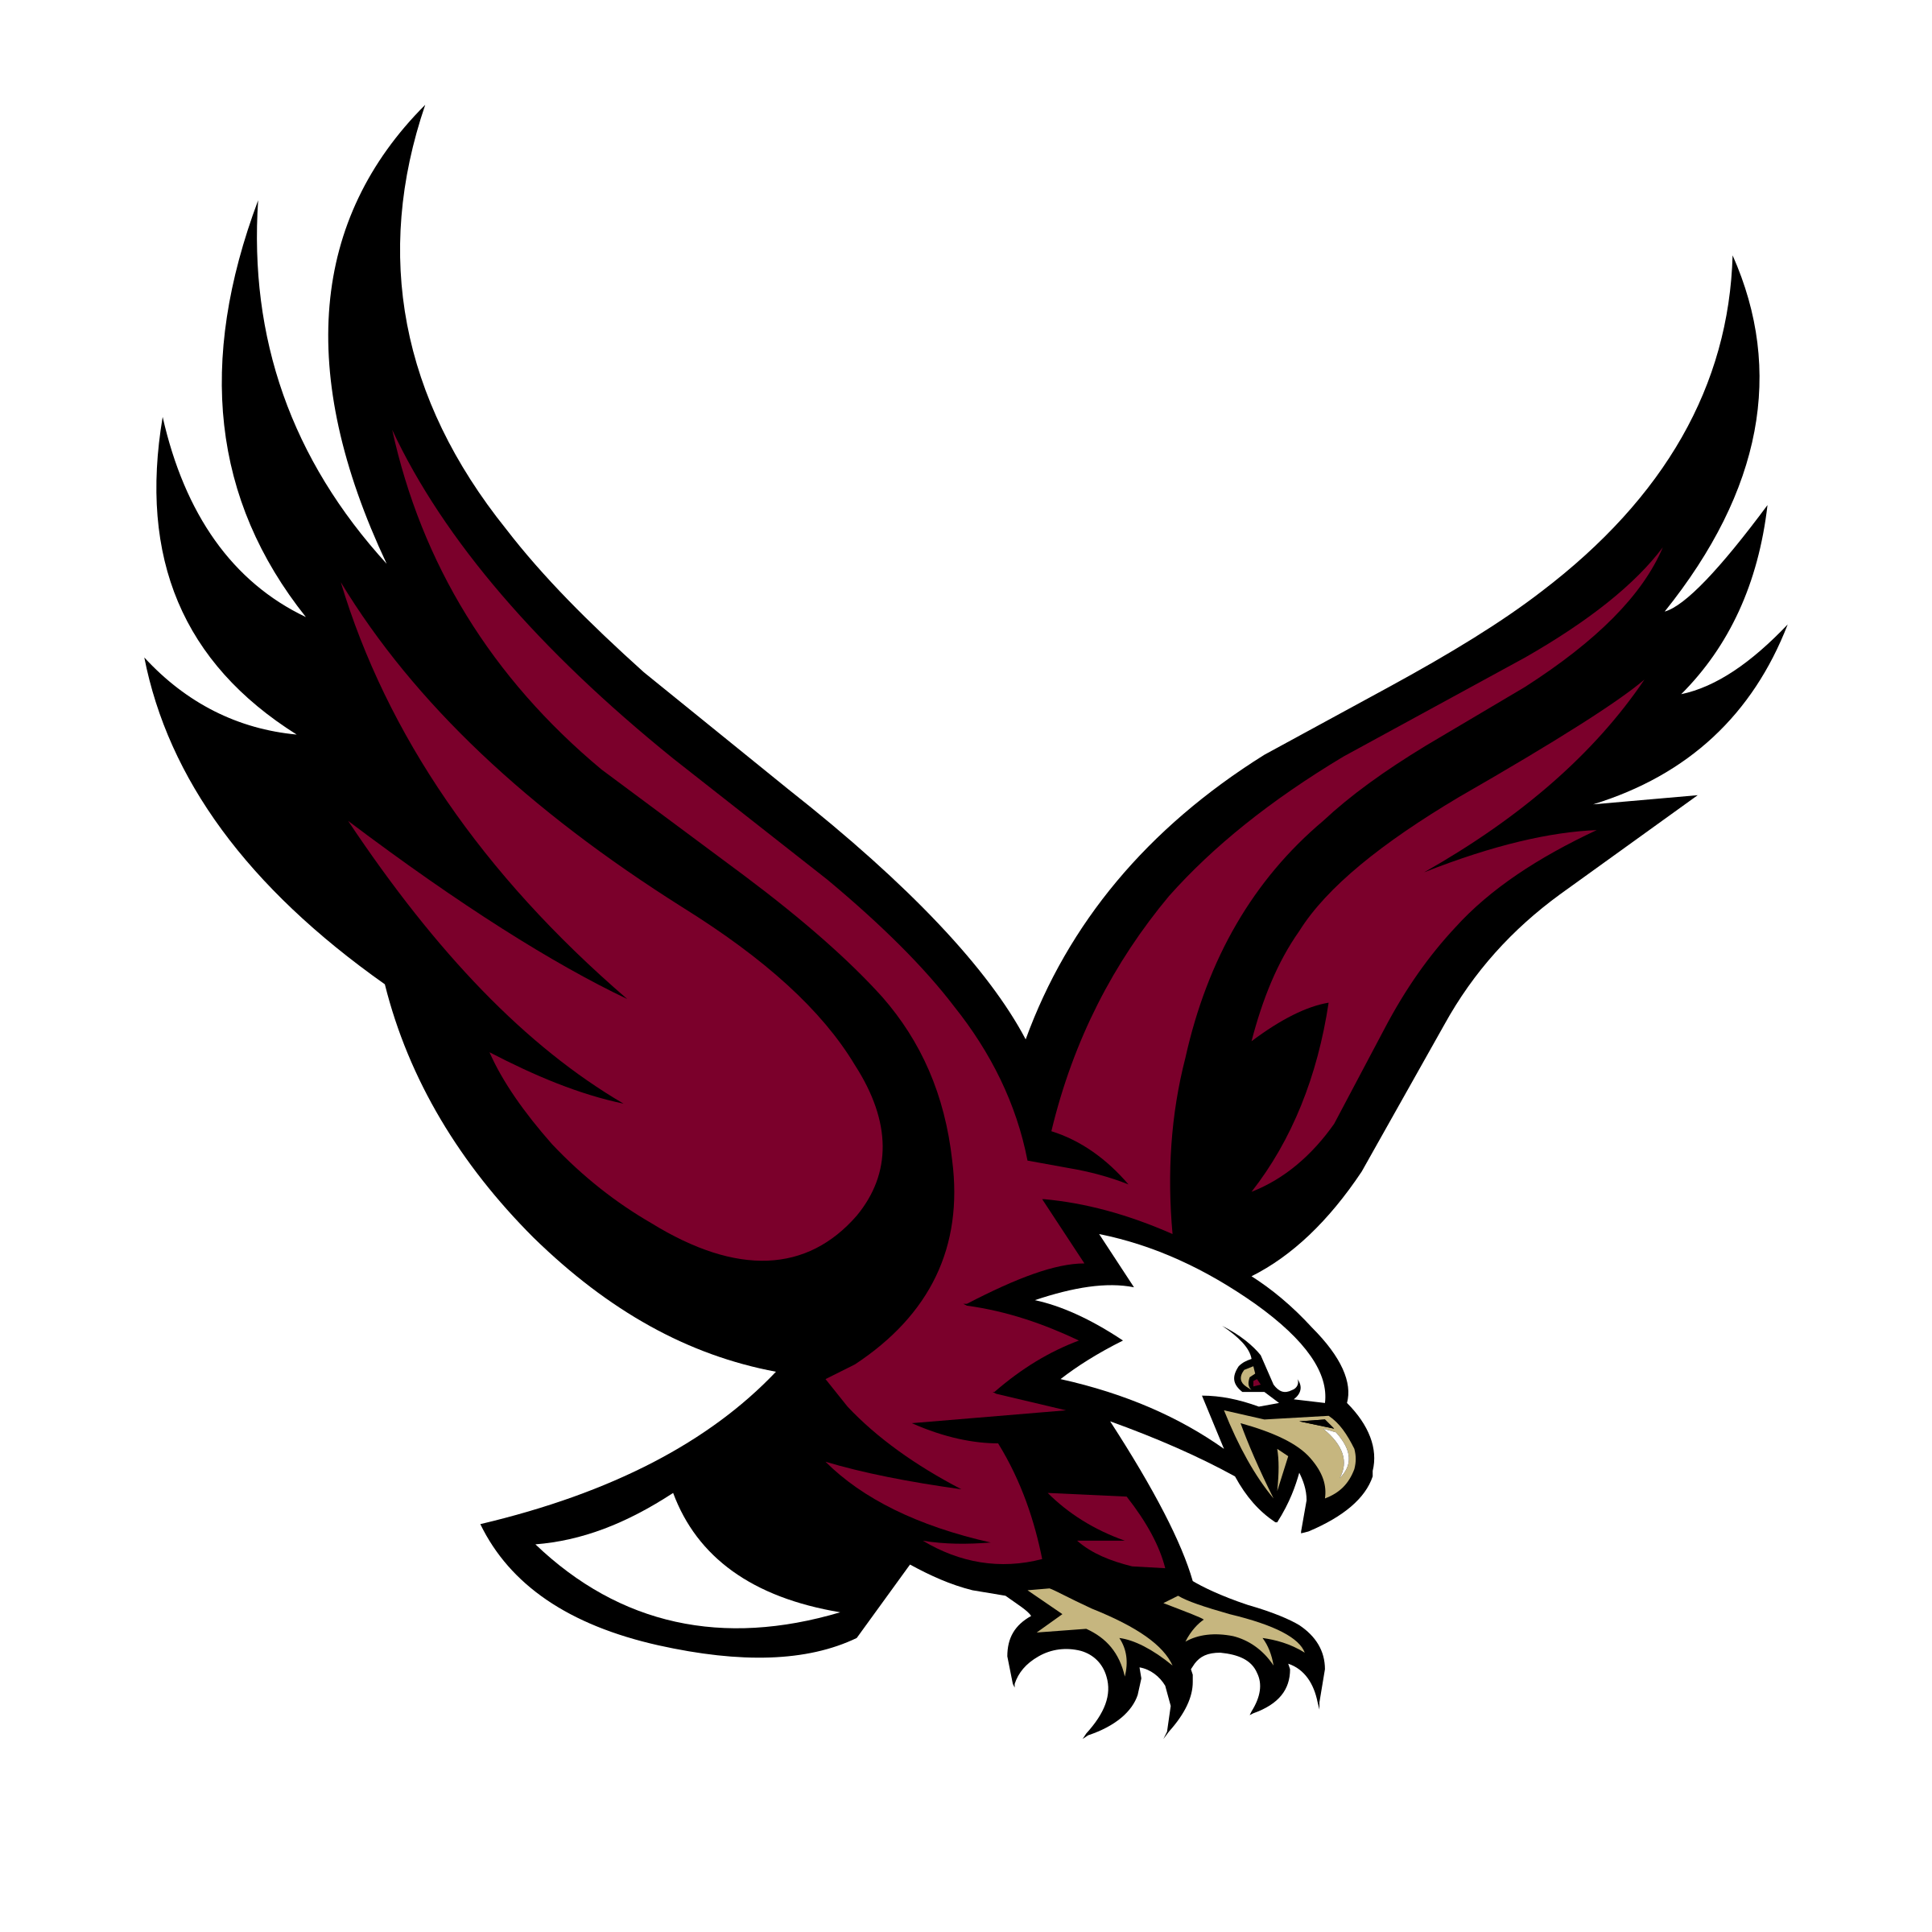 Eagle vector png. Boston college eagles logo